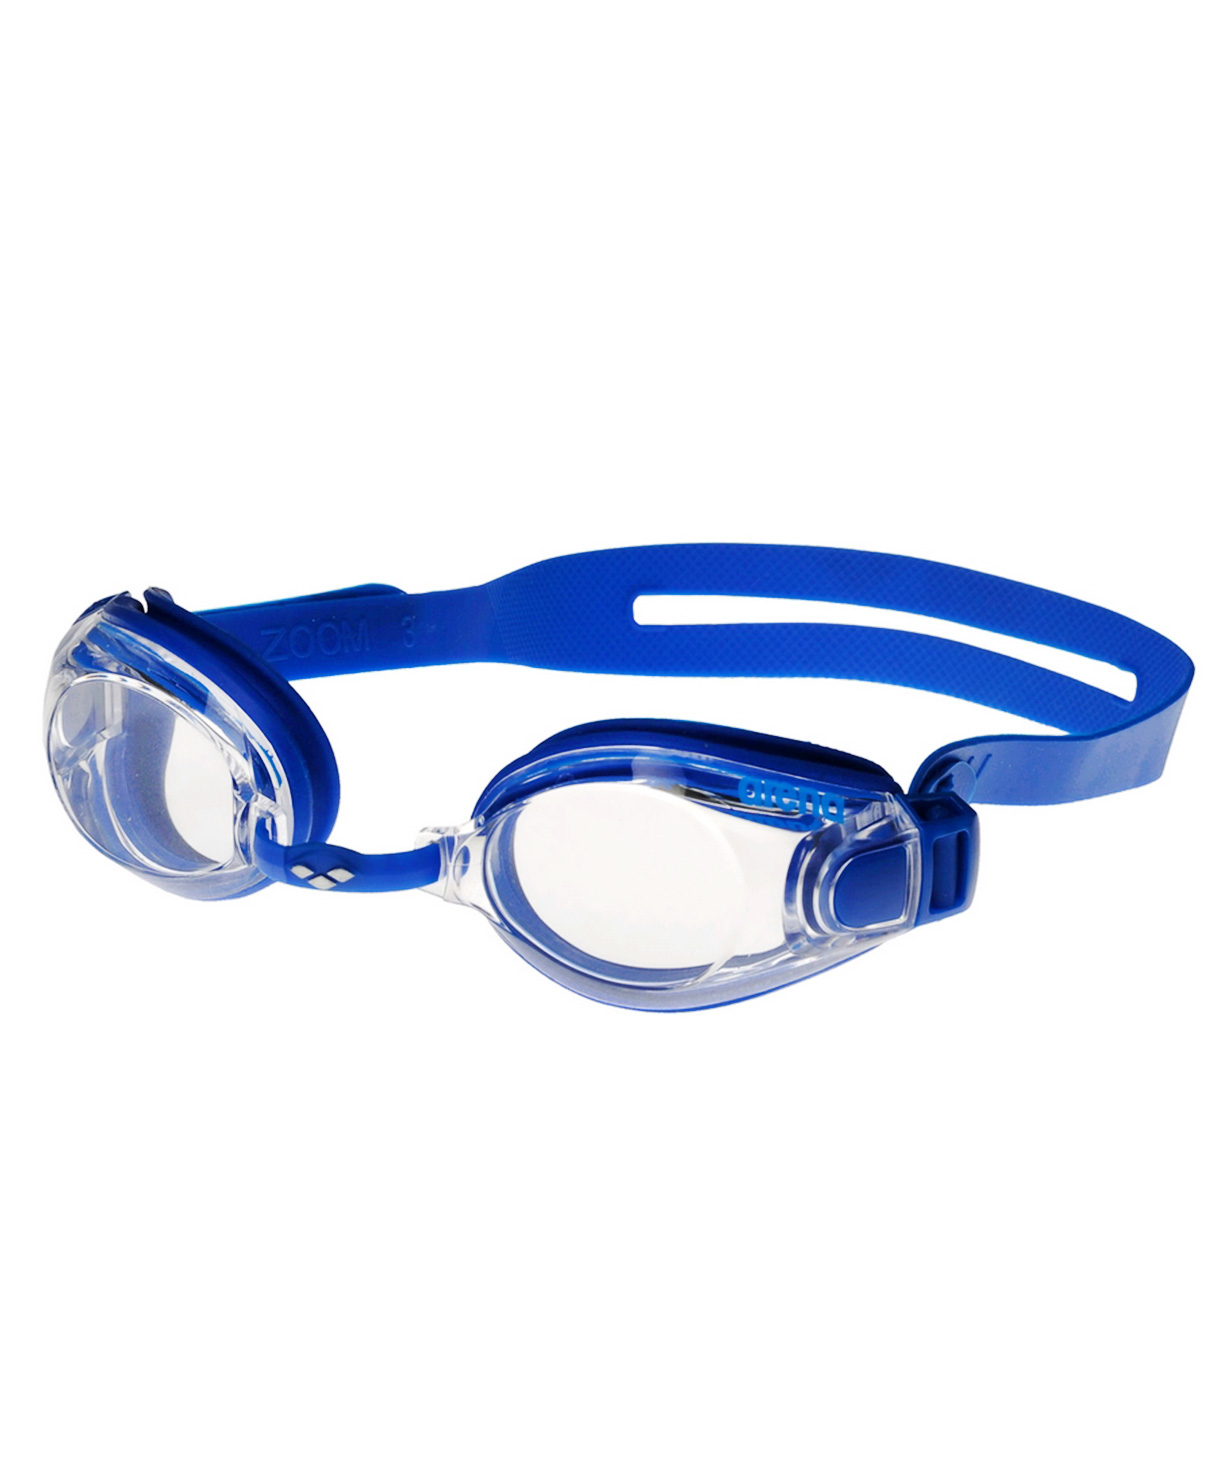 Очки Zoom X-fit Blue/Clear/Blue (92404 71)